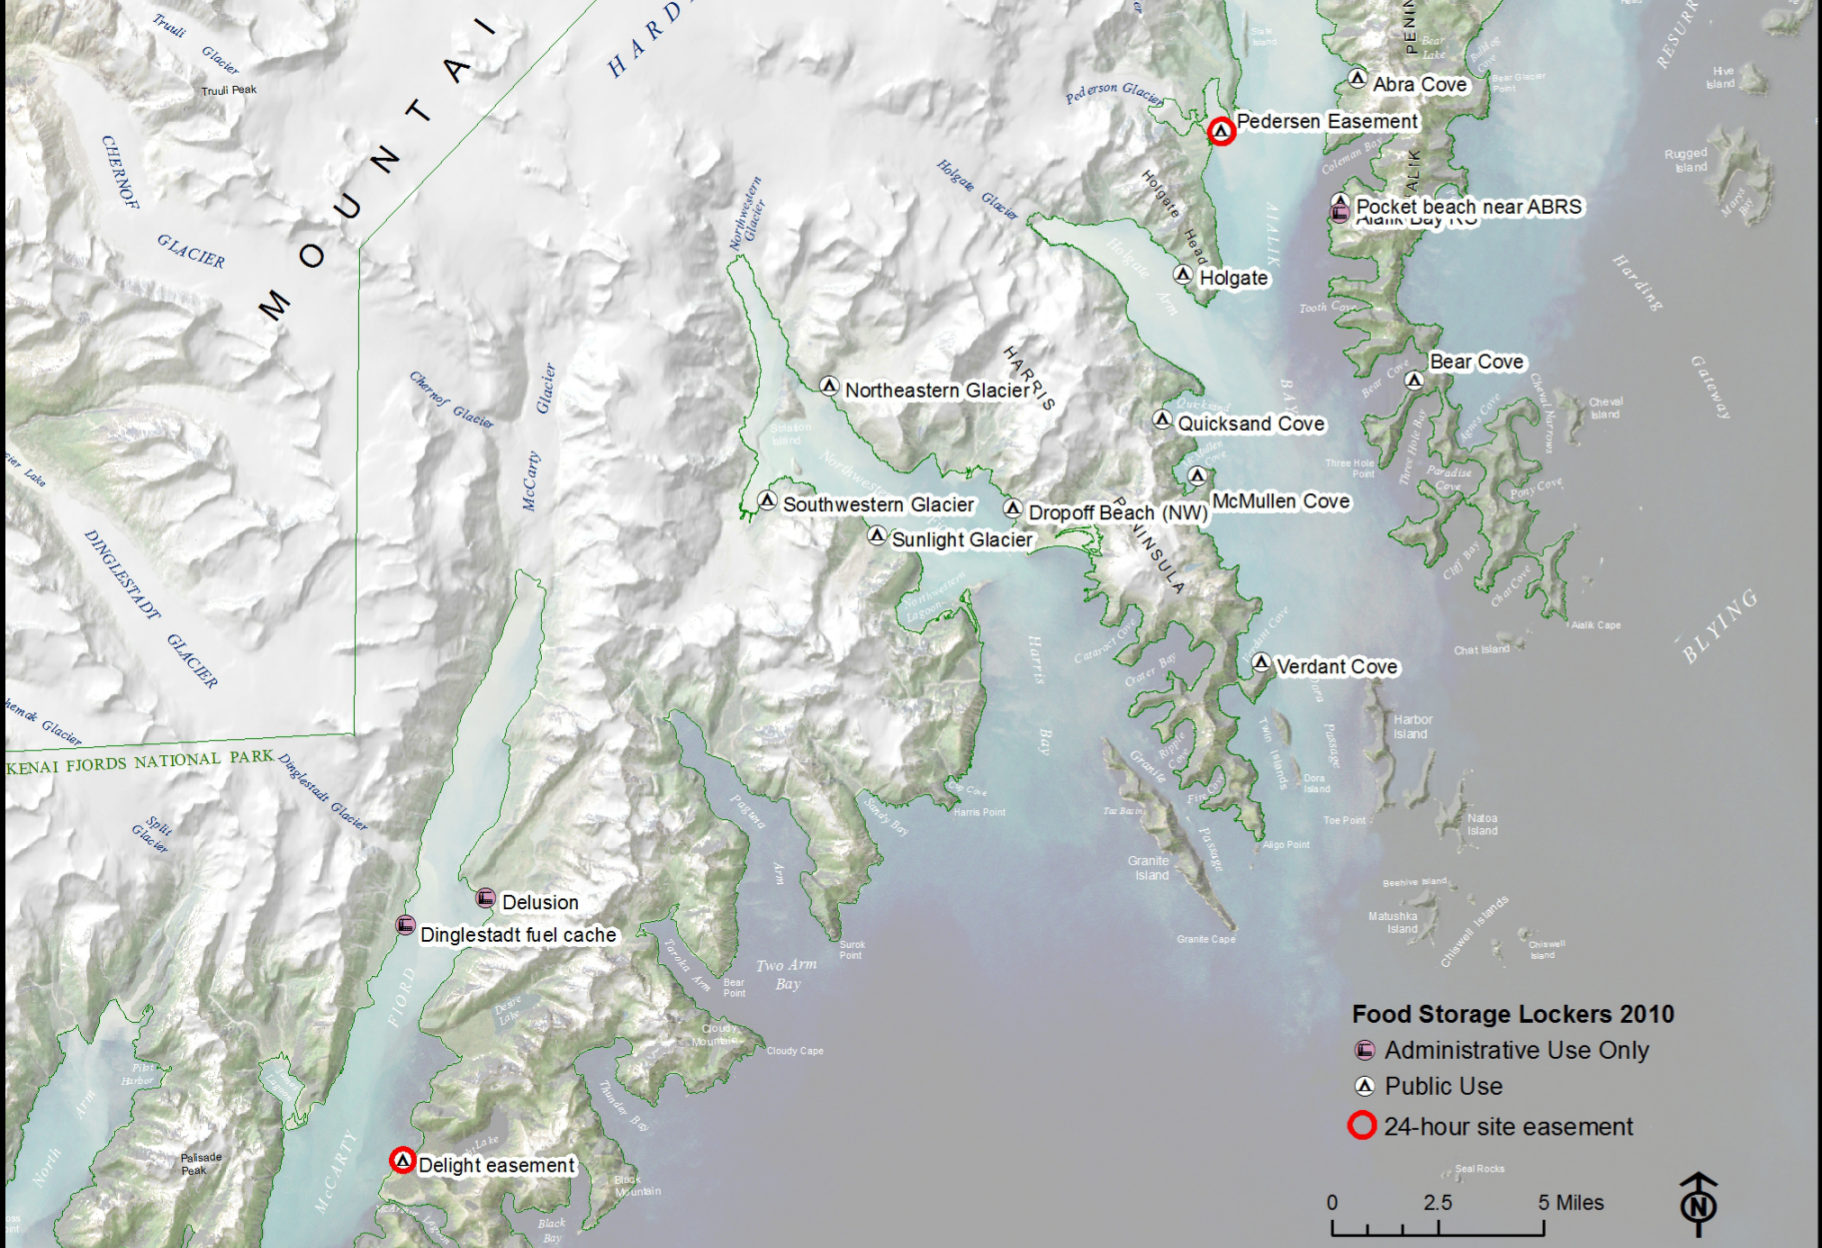 Kenai Fjords Maps NPMapscom just free maps period